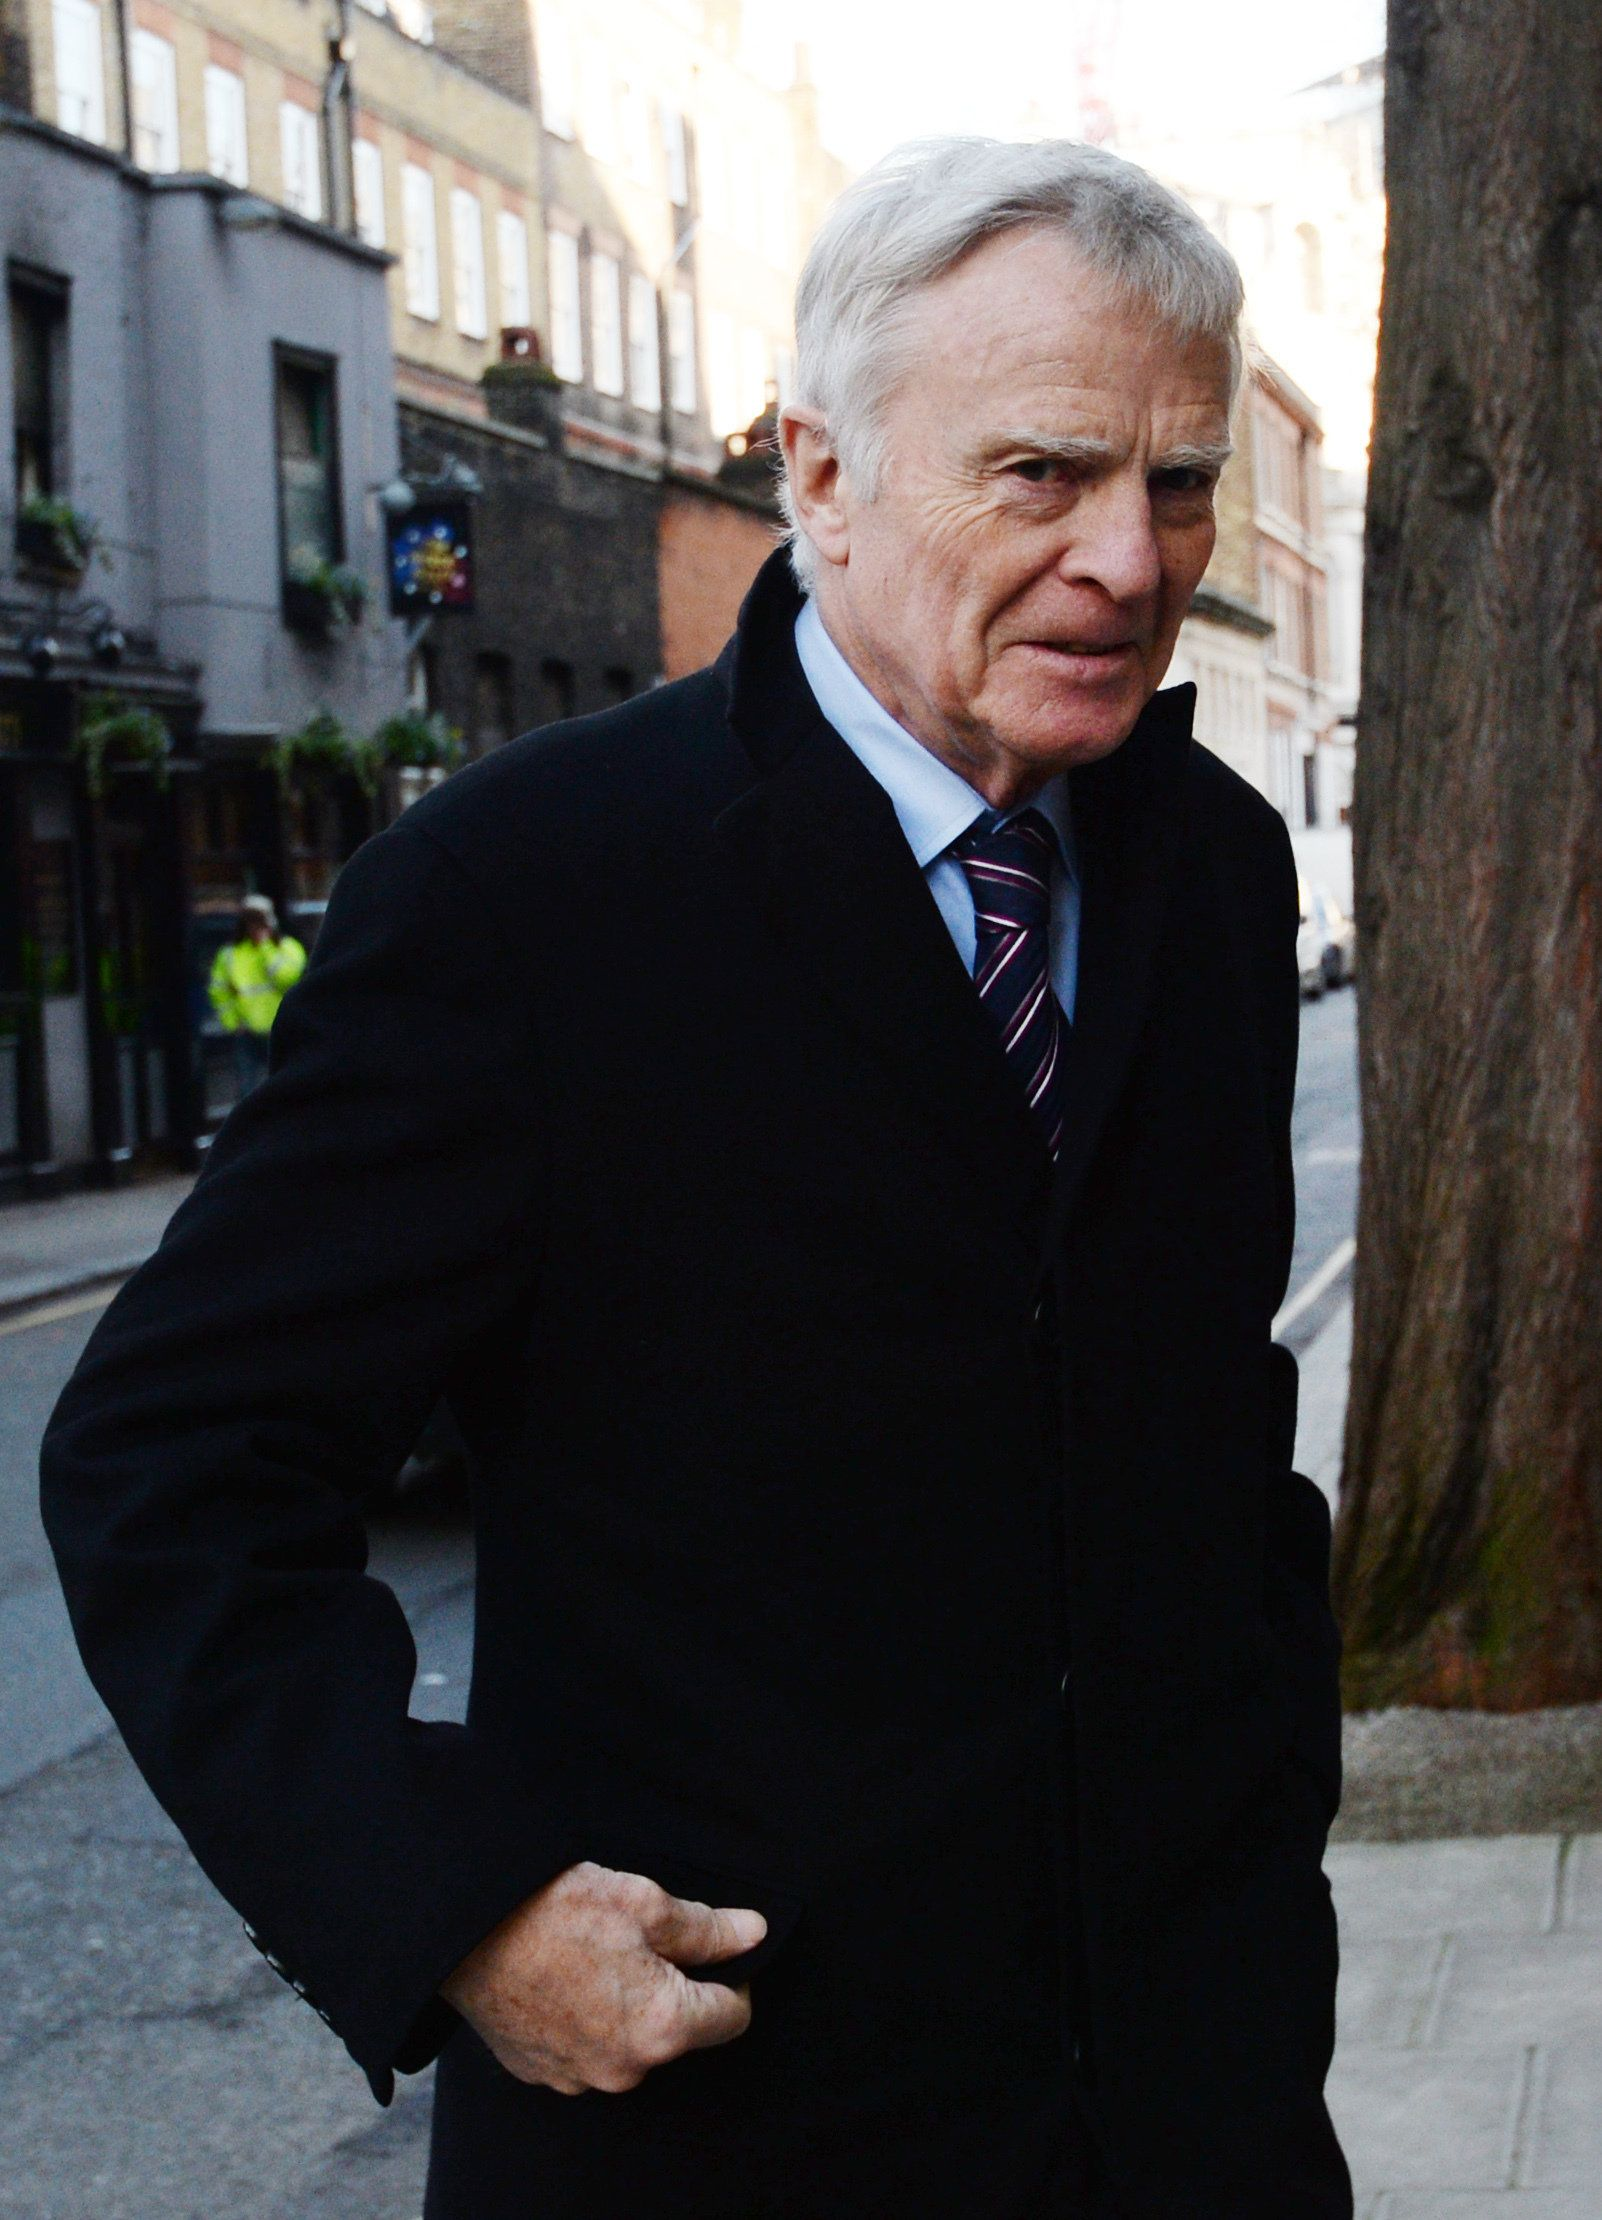 Max Mosley denied money to fund press regulator Impress was put together by his father and 1930s fascist...